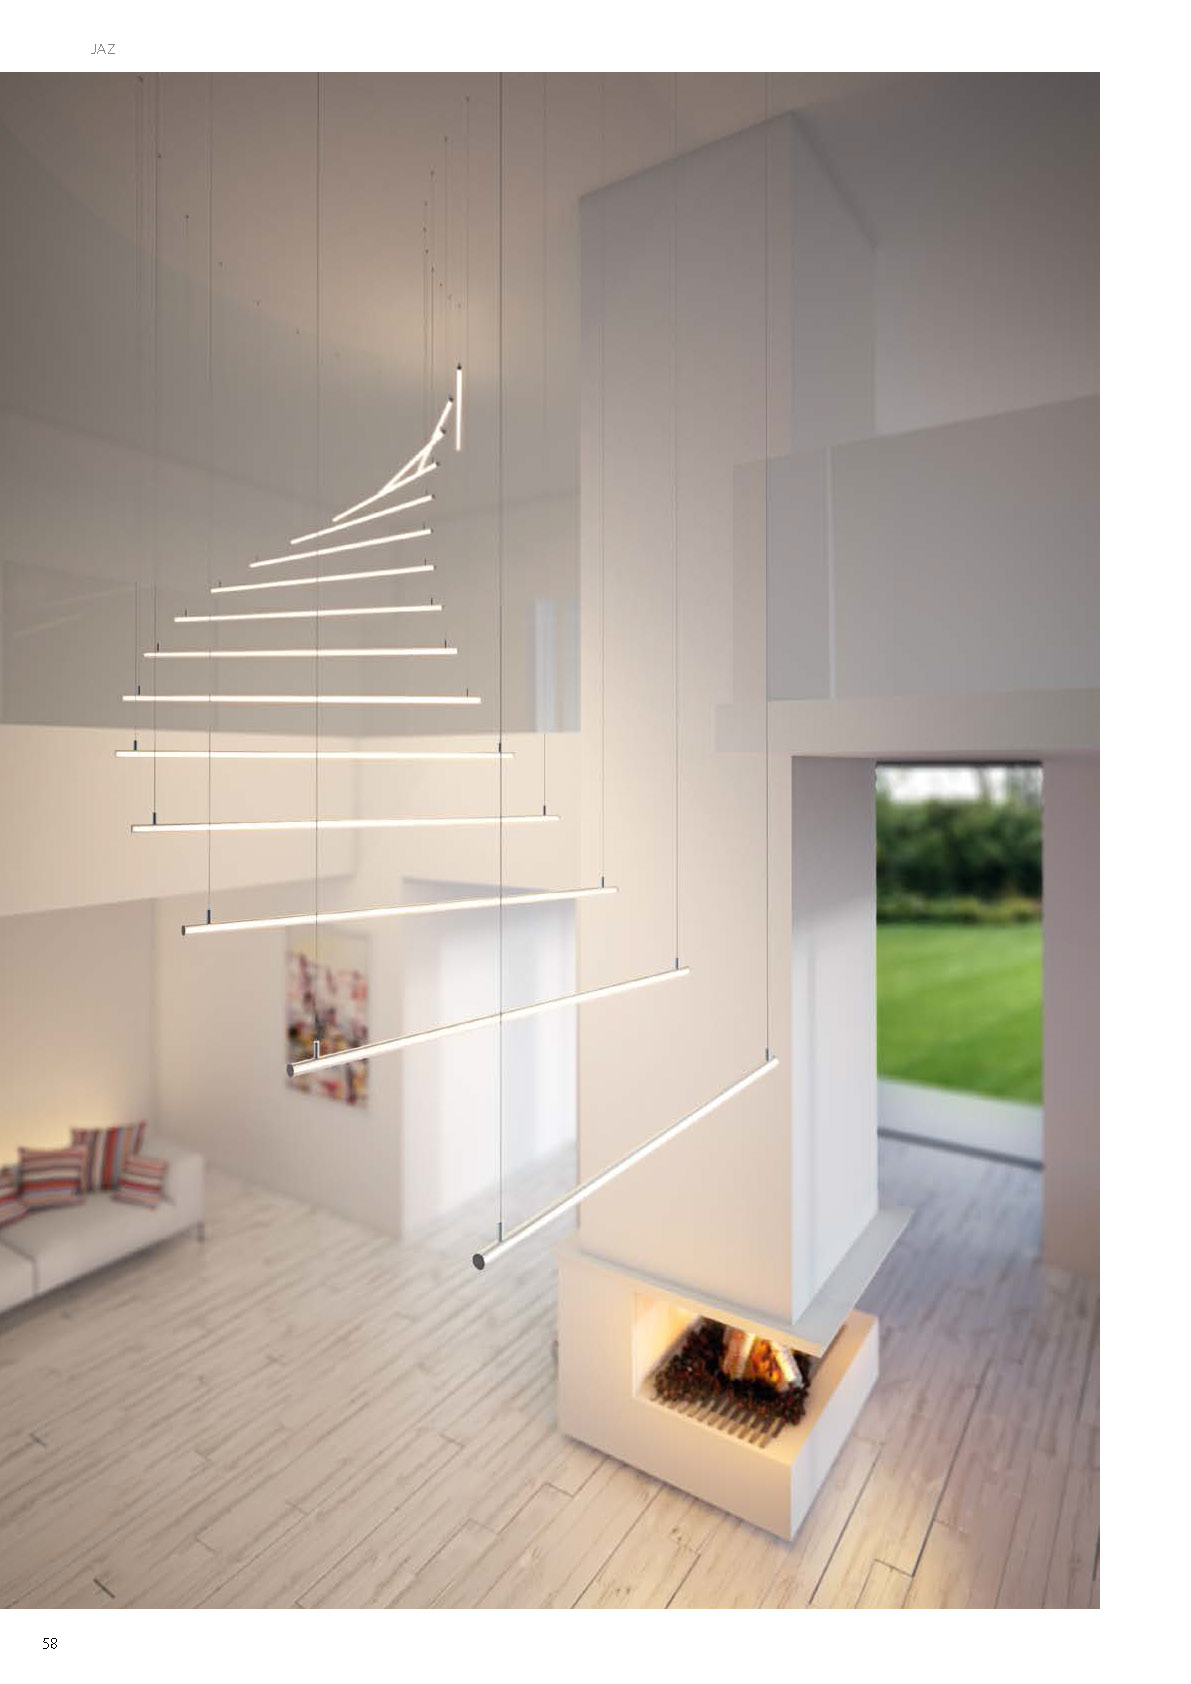 JAZ, profile | stair-lighting.com, B8547 profile, JAZ klus profile, JAZ channel,